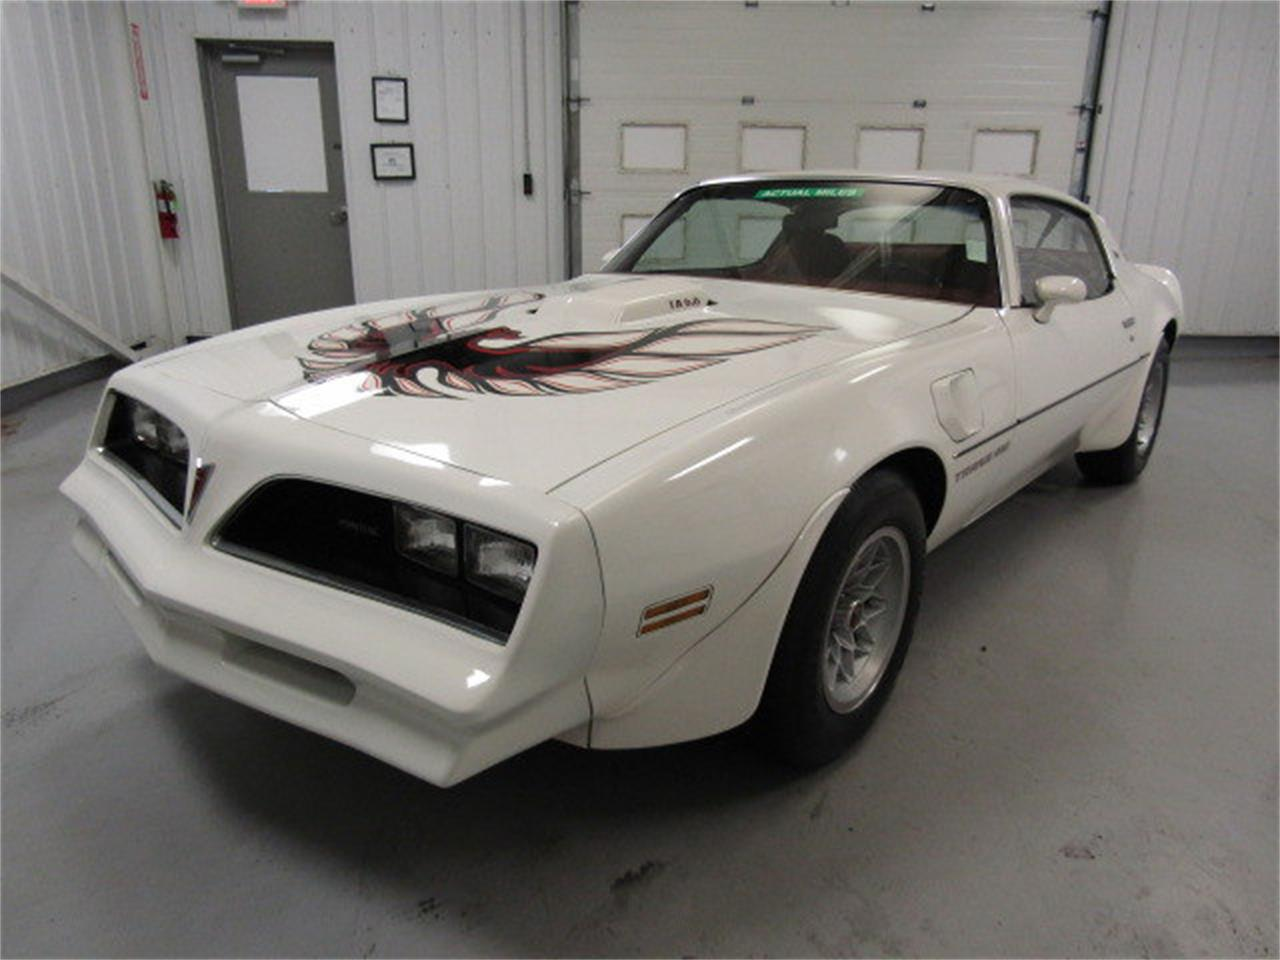 Large Picture of '78 Pontiac Firebird located in Virginia - $39,000.00 - JLC2